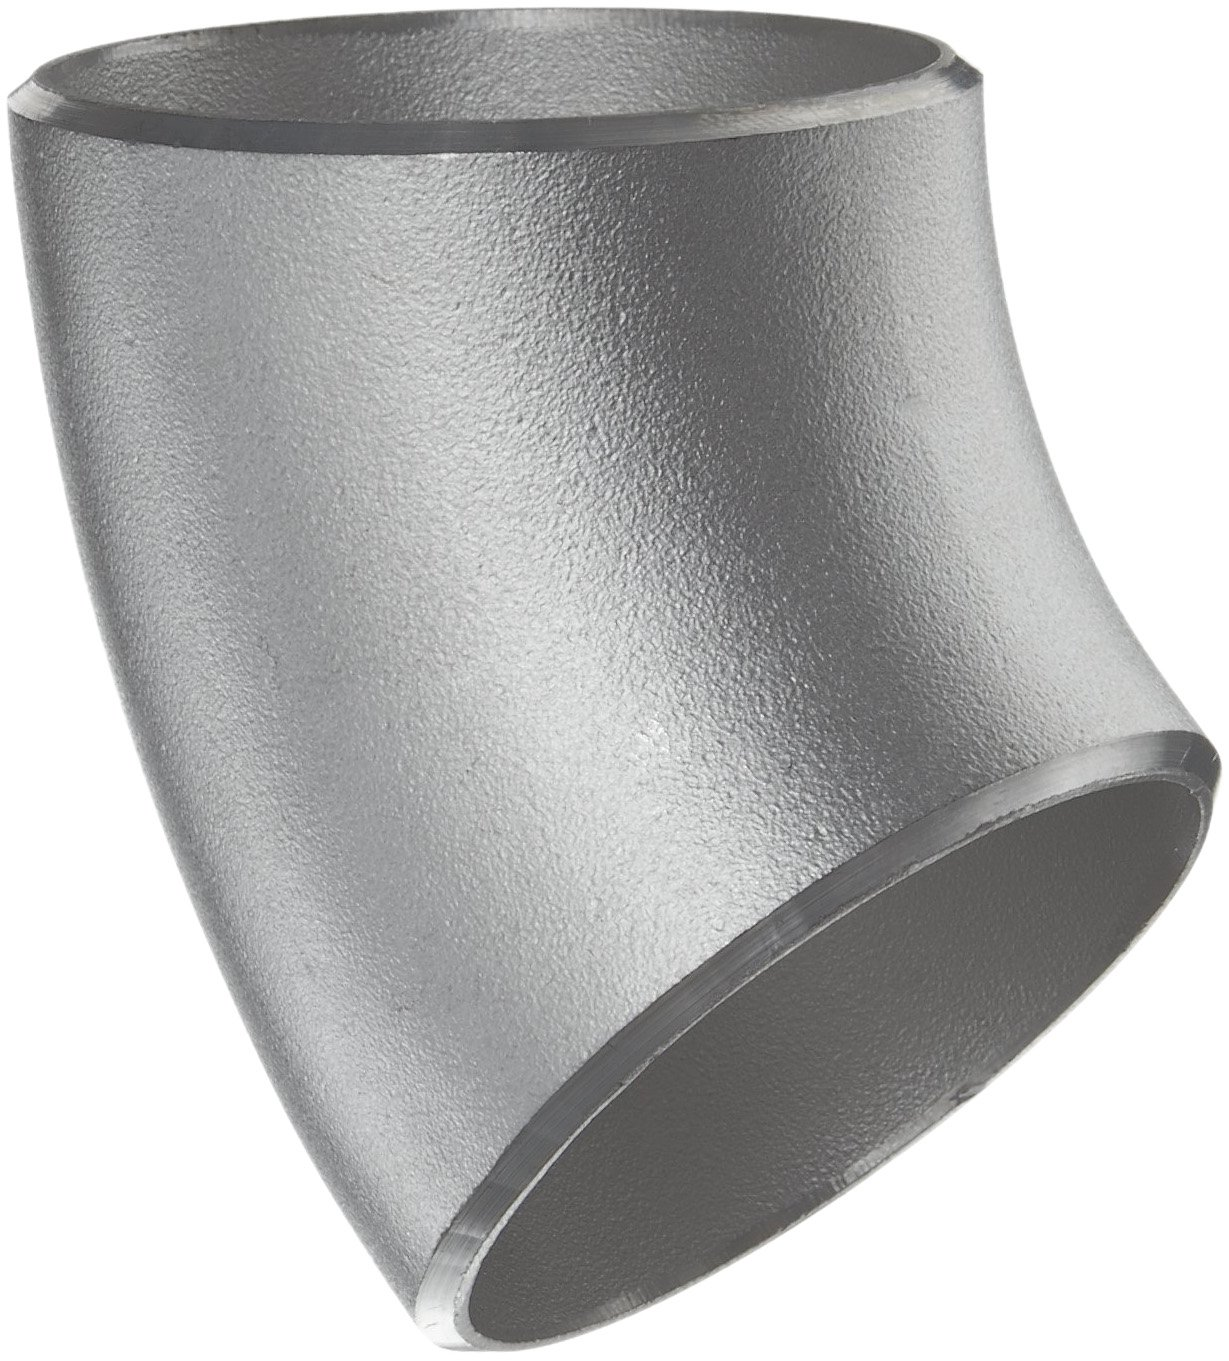 Pipe Fittings Alloy Steel Forged Weld Elbows